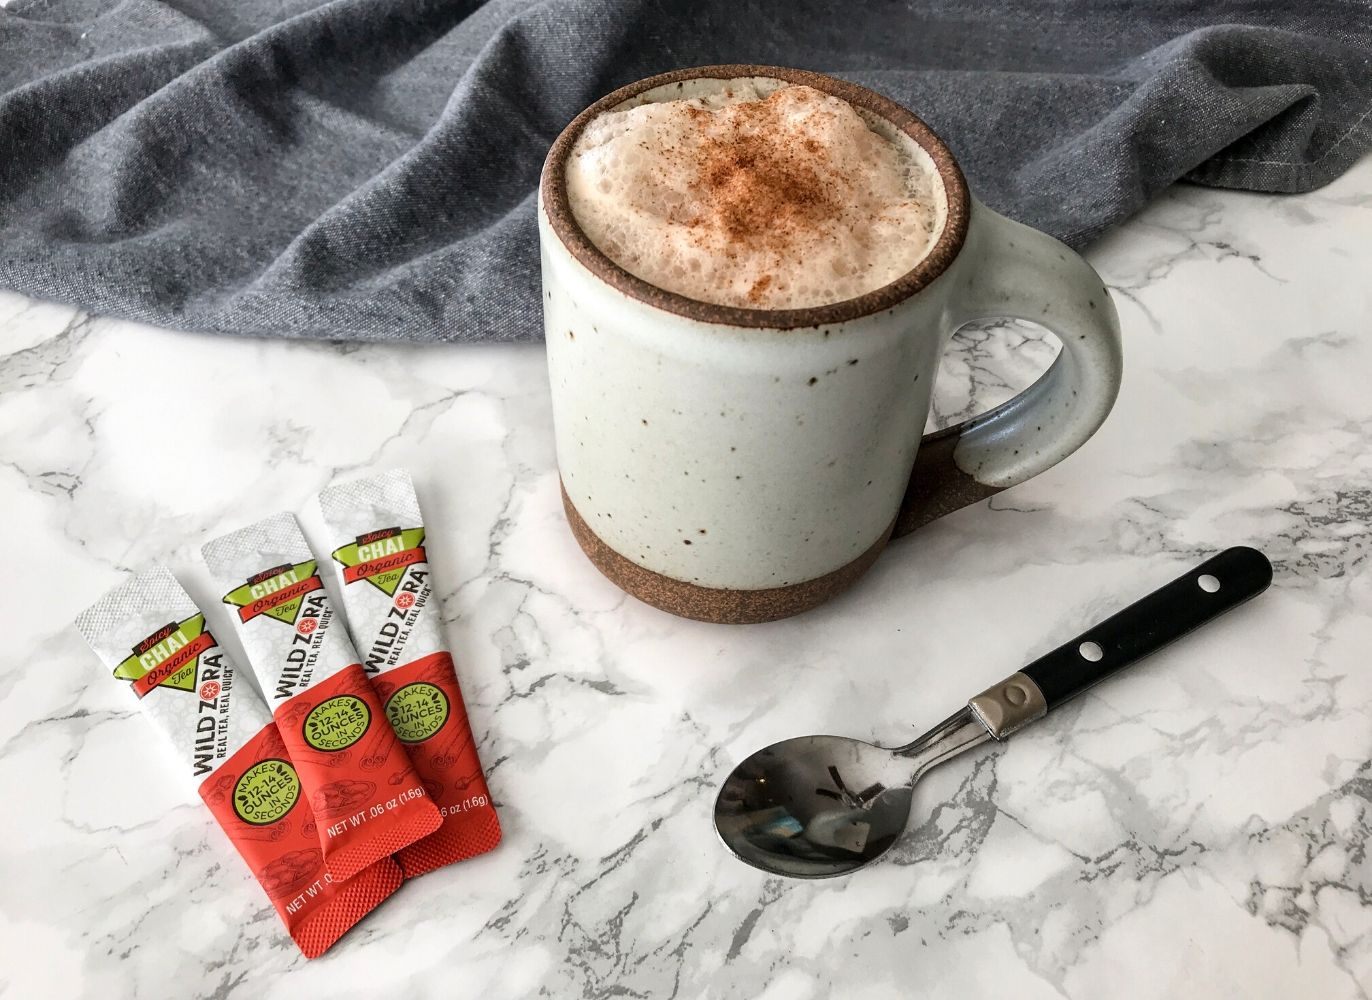 easy chai latte recipe in a ceramic mug beside three packets of wild zora spicy chai tea and a spoon with a black handle